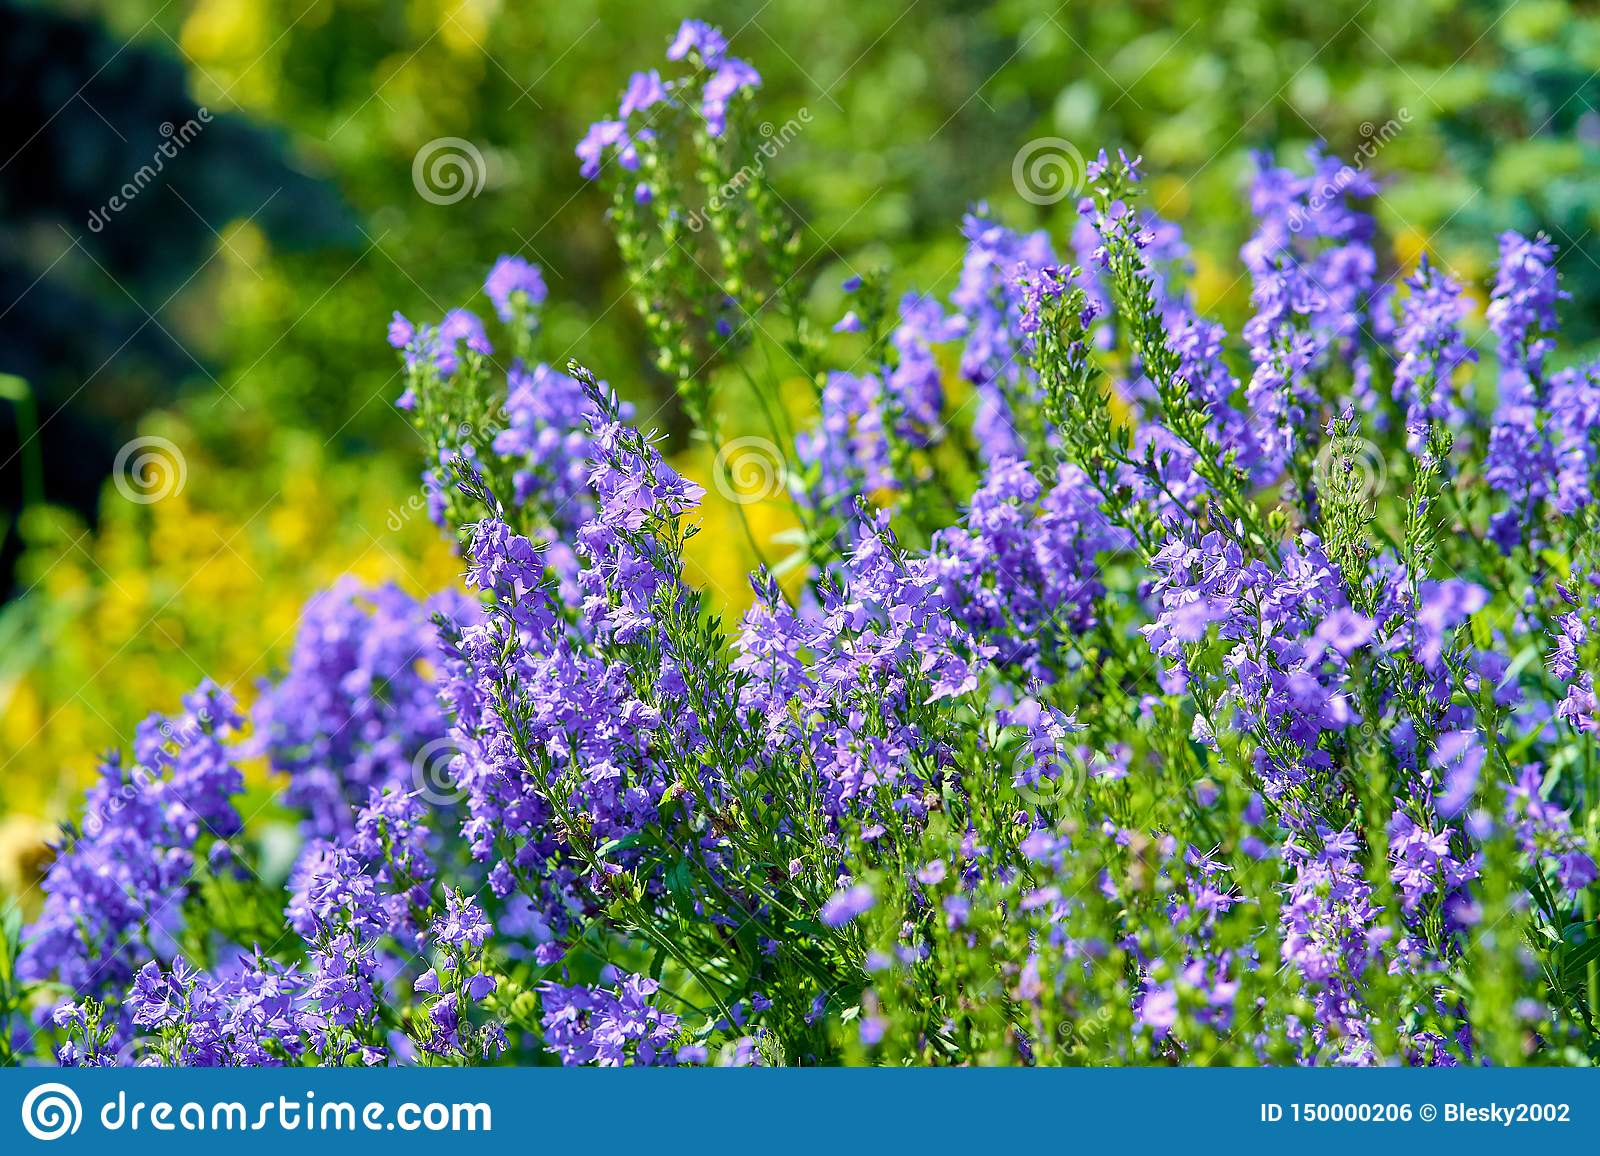 Blue flowers in blossom on a sunny day, blurred background no people